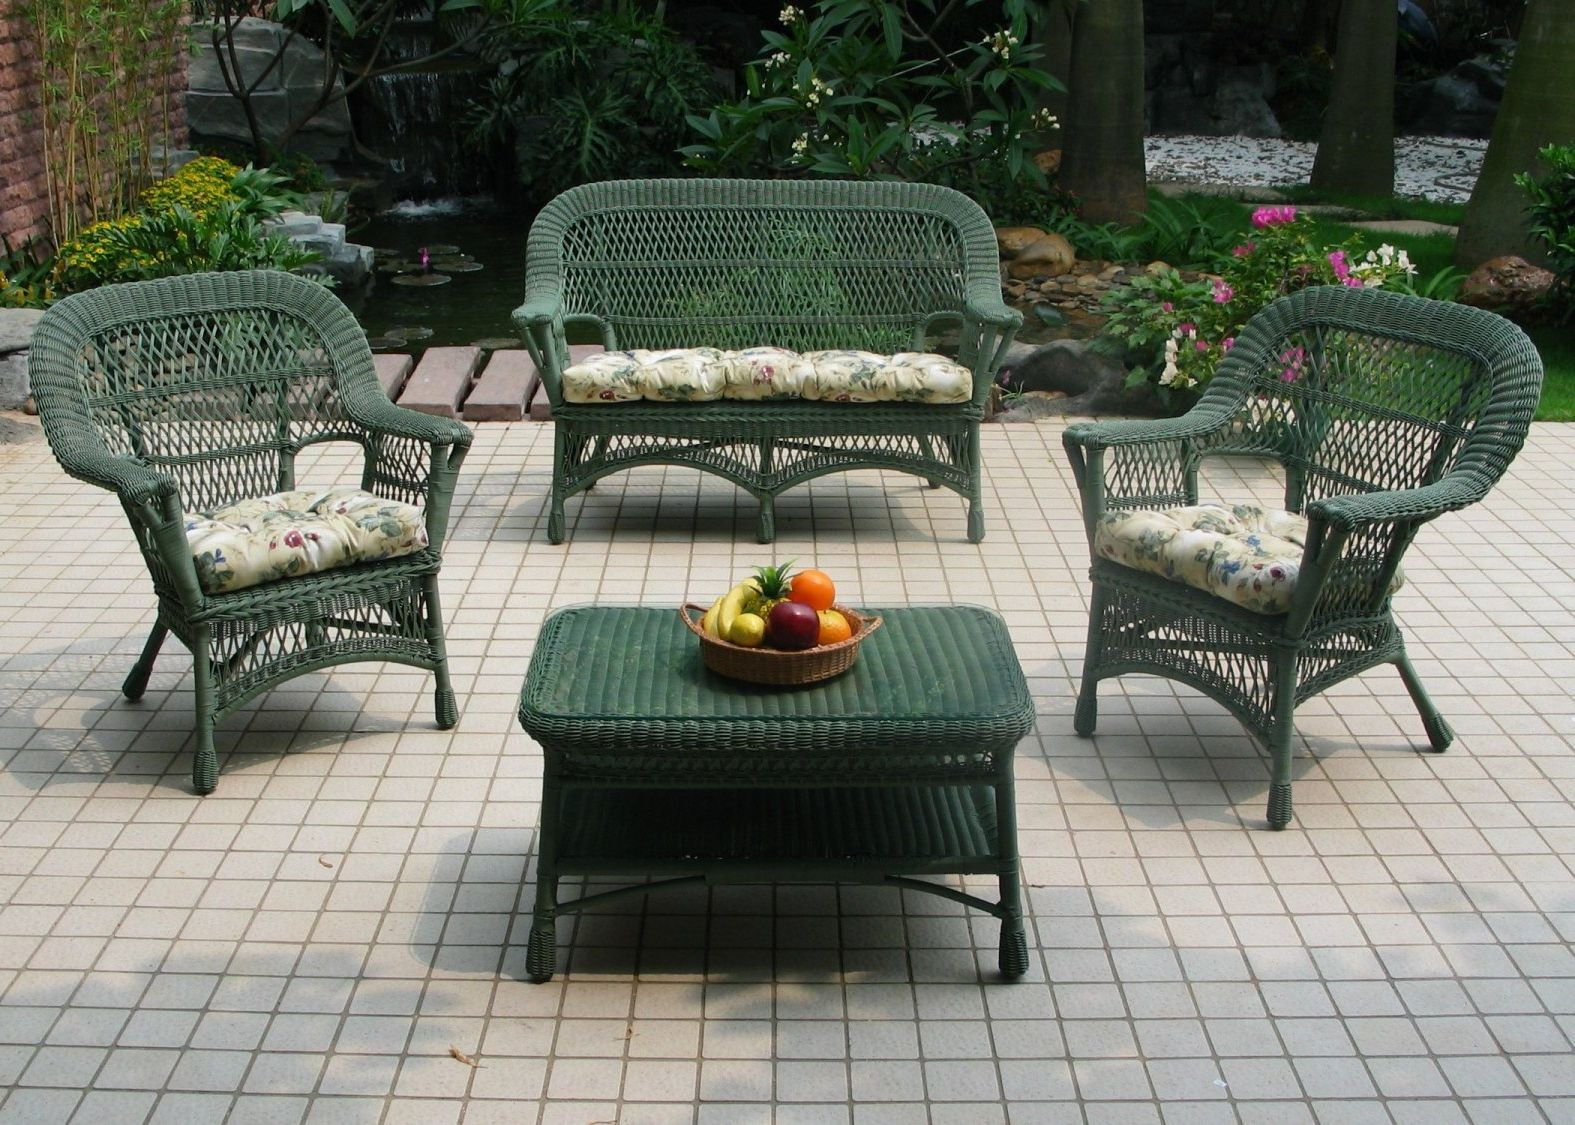 Lowes Patio Furniture | lowes patio furniture clearance | Home ...